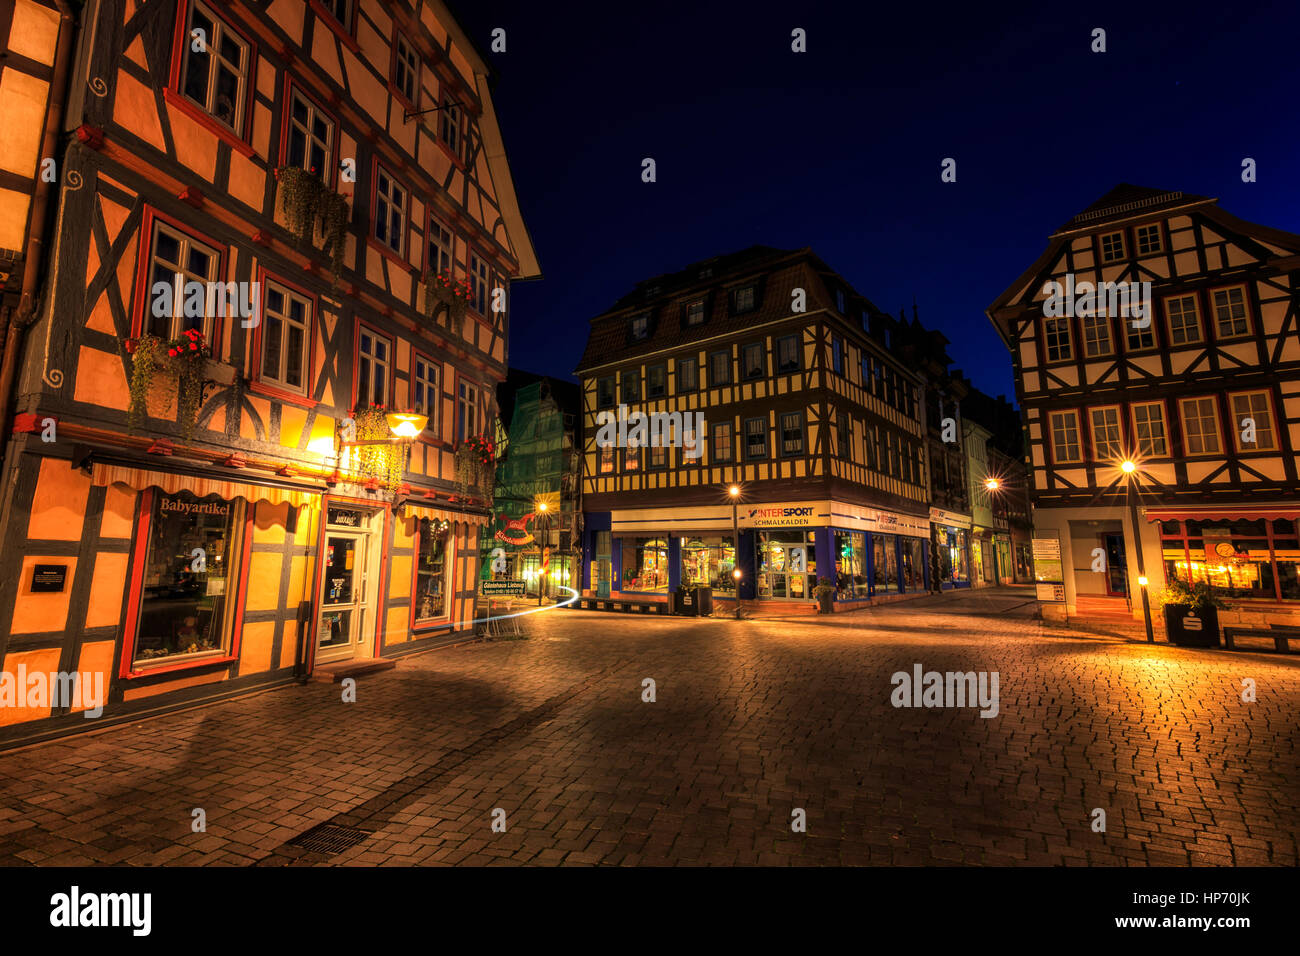 Historical City Center Of Schmalkalden, Germany - Stock Image